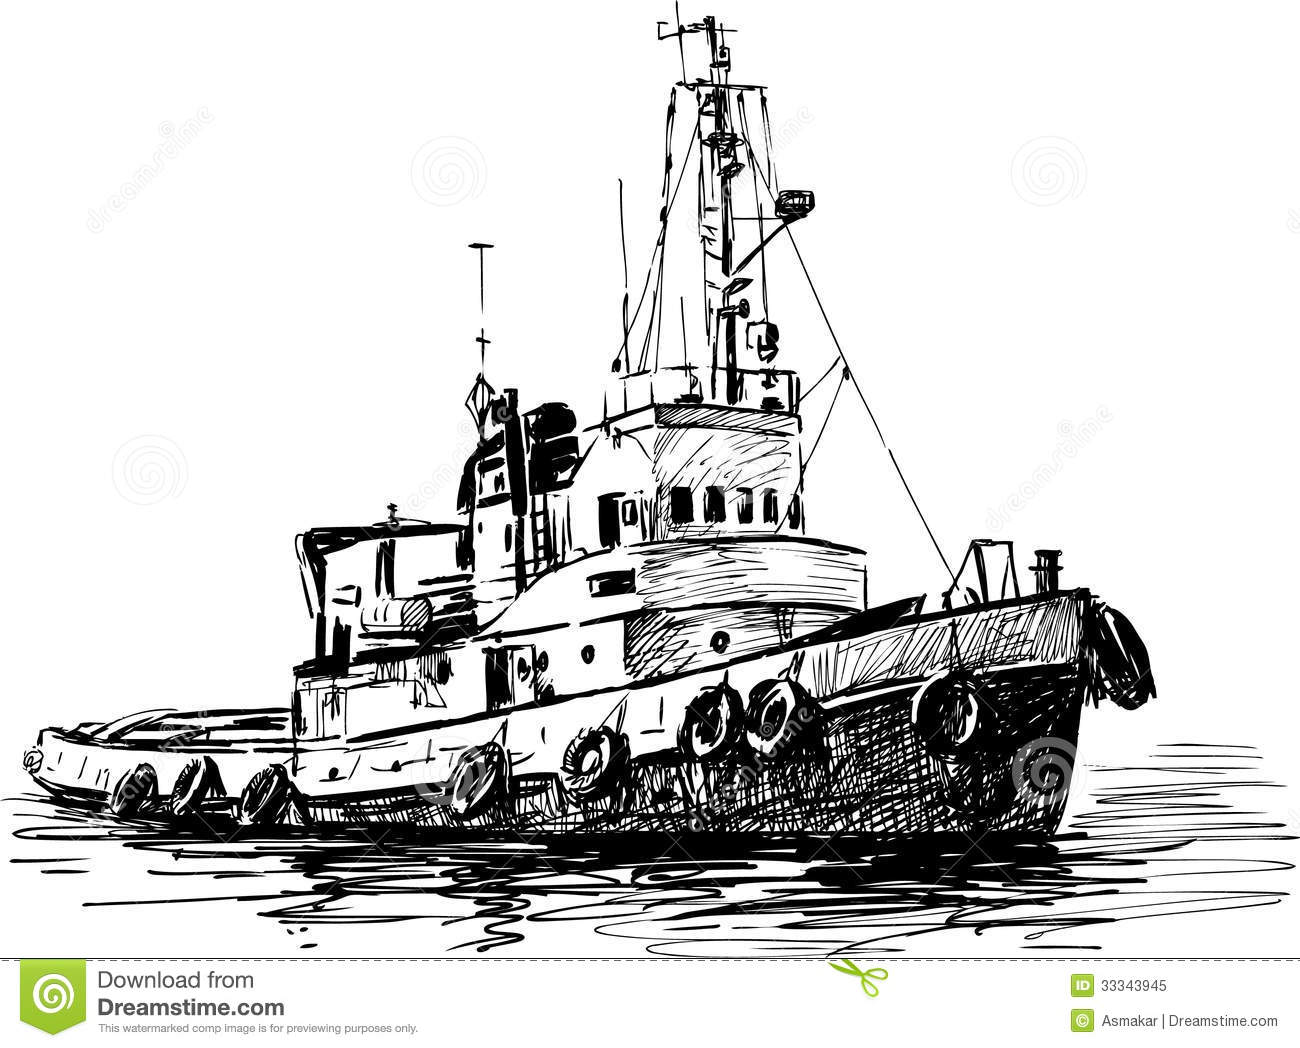 Industrial Boat Royalty Free Stock Photo - Image: 33343945